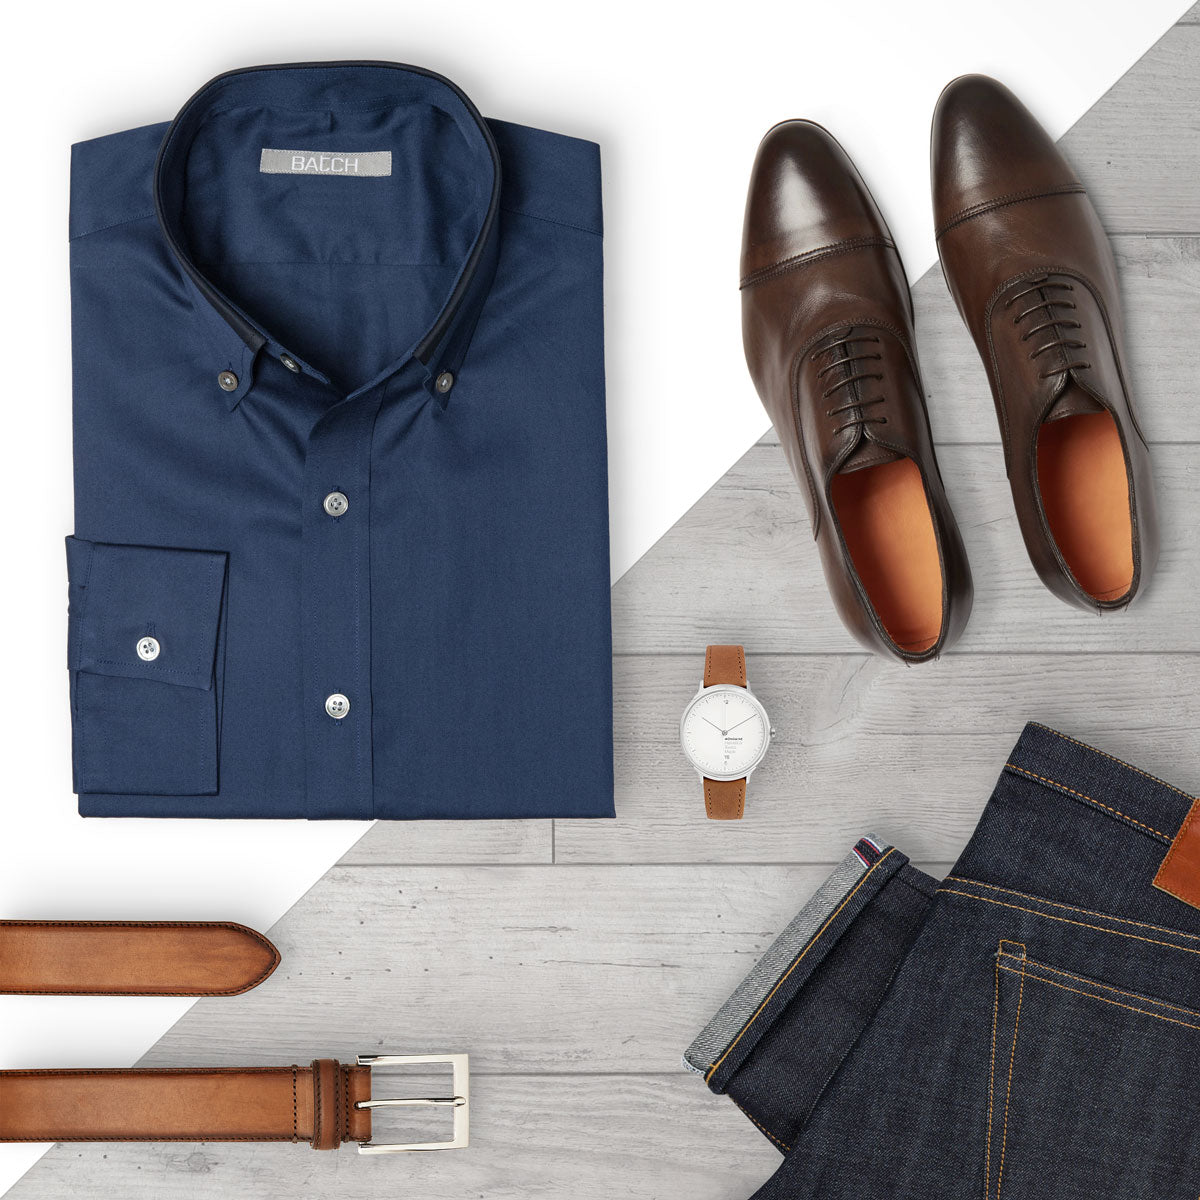 Business Casual Outfit with Navy Dress Shirt